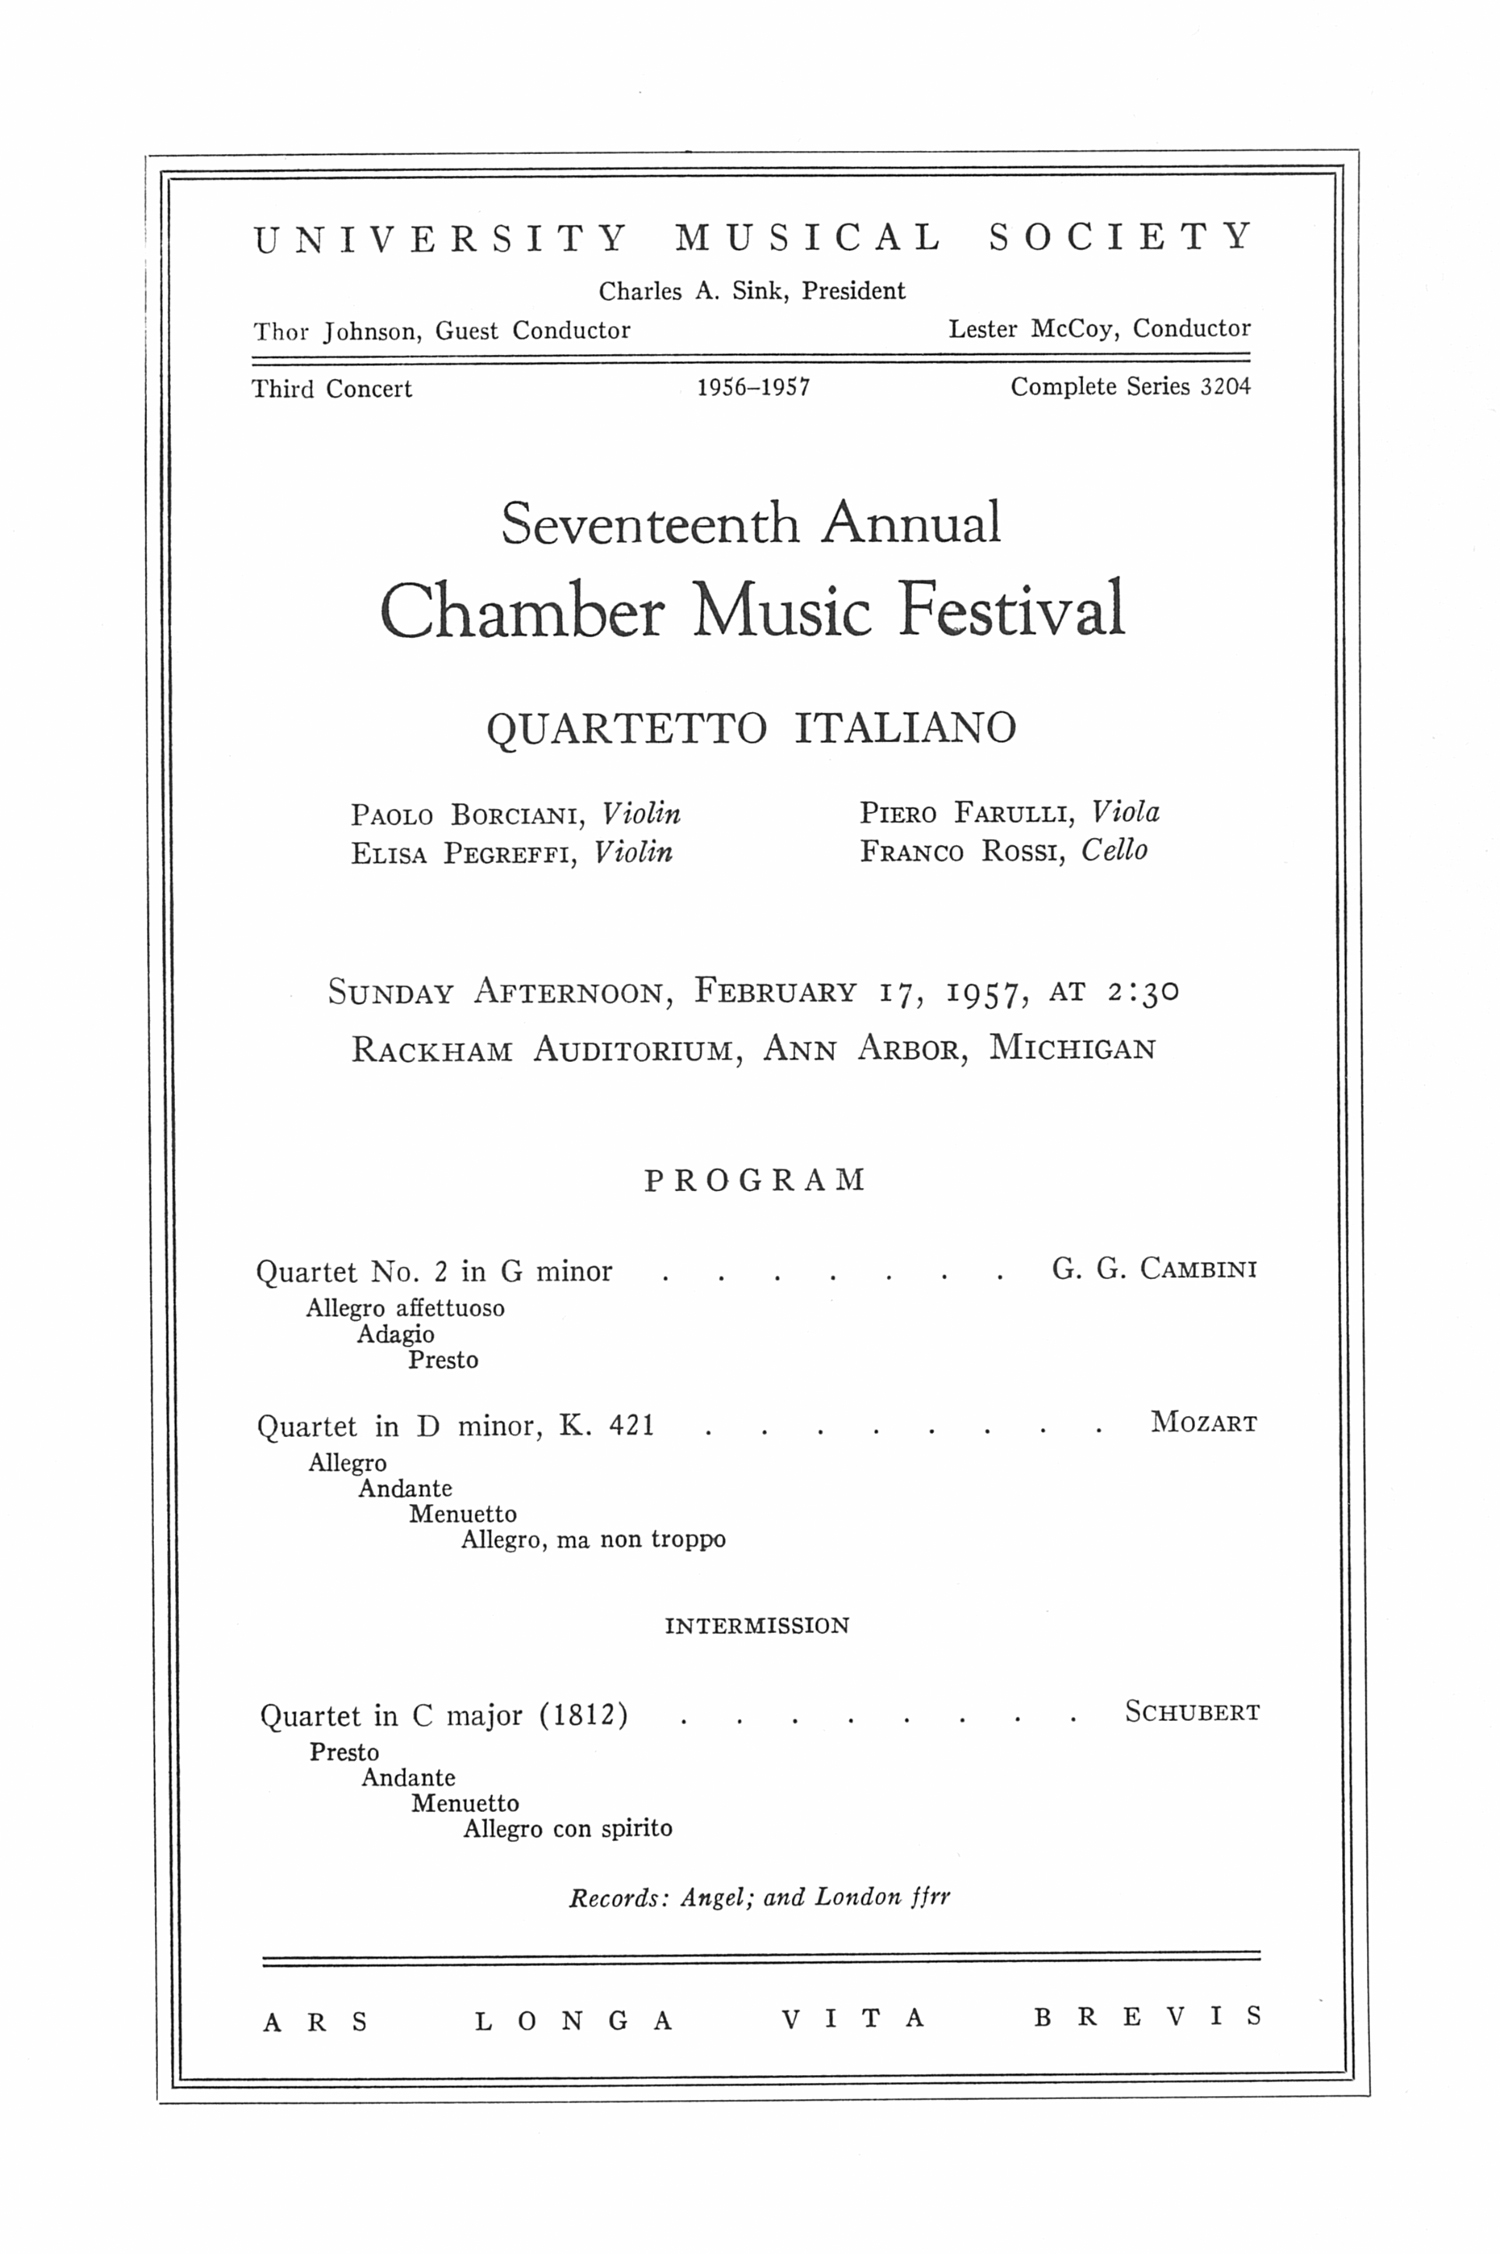 UMS Concert Program, February 17, 1957: Seventeenth Annual Chamber Music Festival -- Quartetto Italiano image